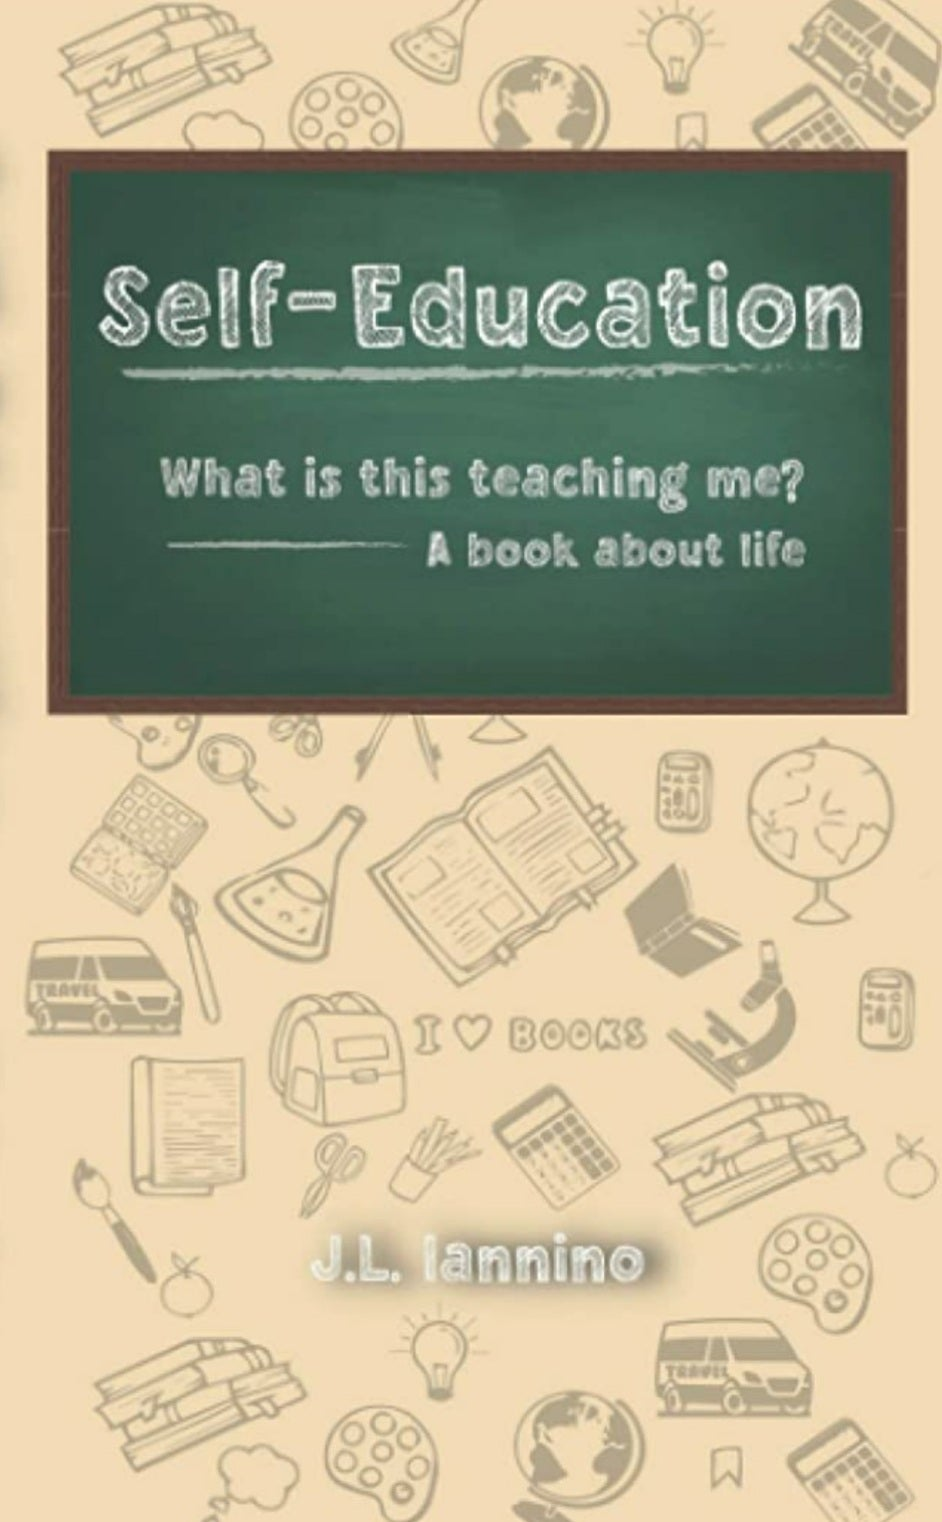 Image of *Self-Education is available on all Amazon market places worldwide (link below).